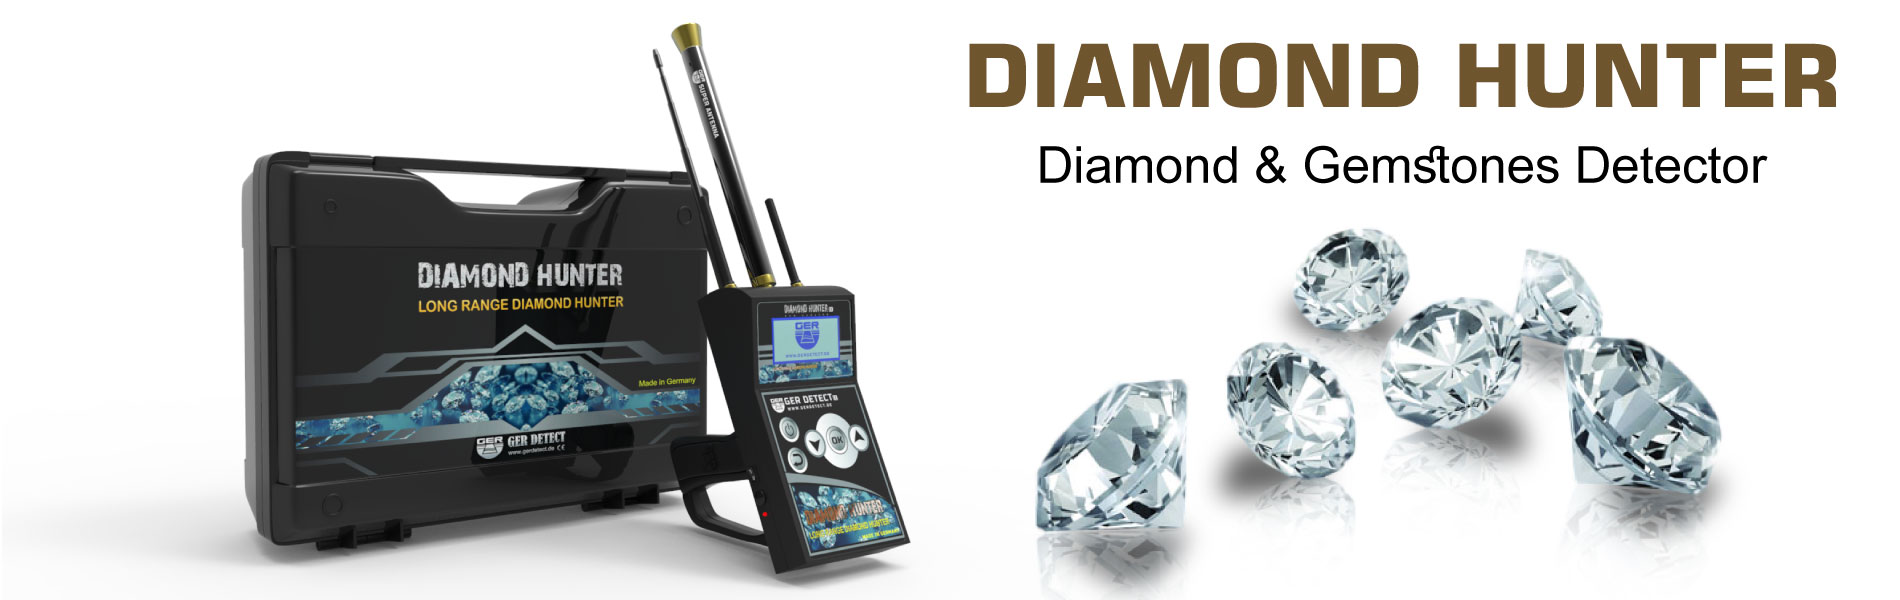 diamond-hunter-long-range-gemstone-detector